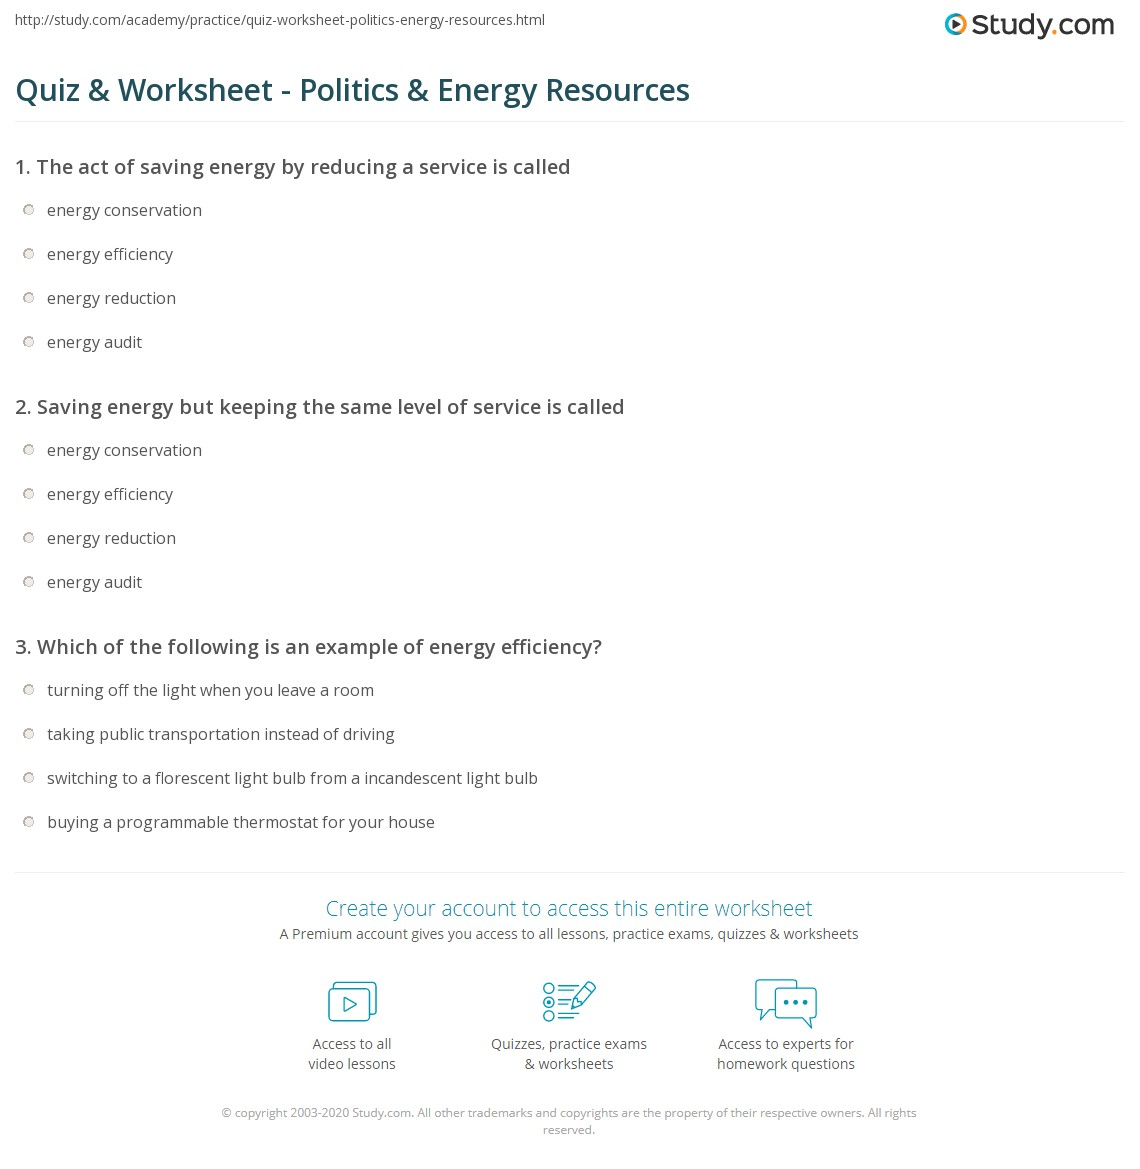 Free Worksheet Energy Resources Worksheet quiz worksheet politics energy resources study com print the of conservation efficiency renewable worksheet